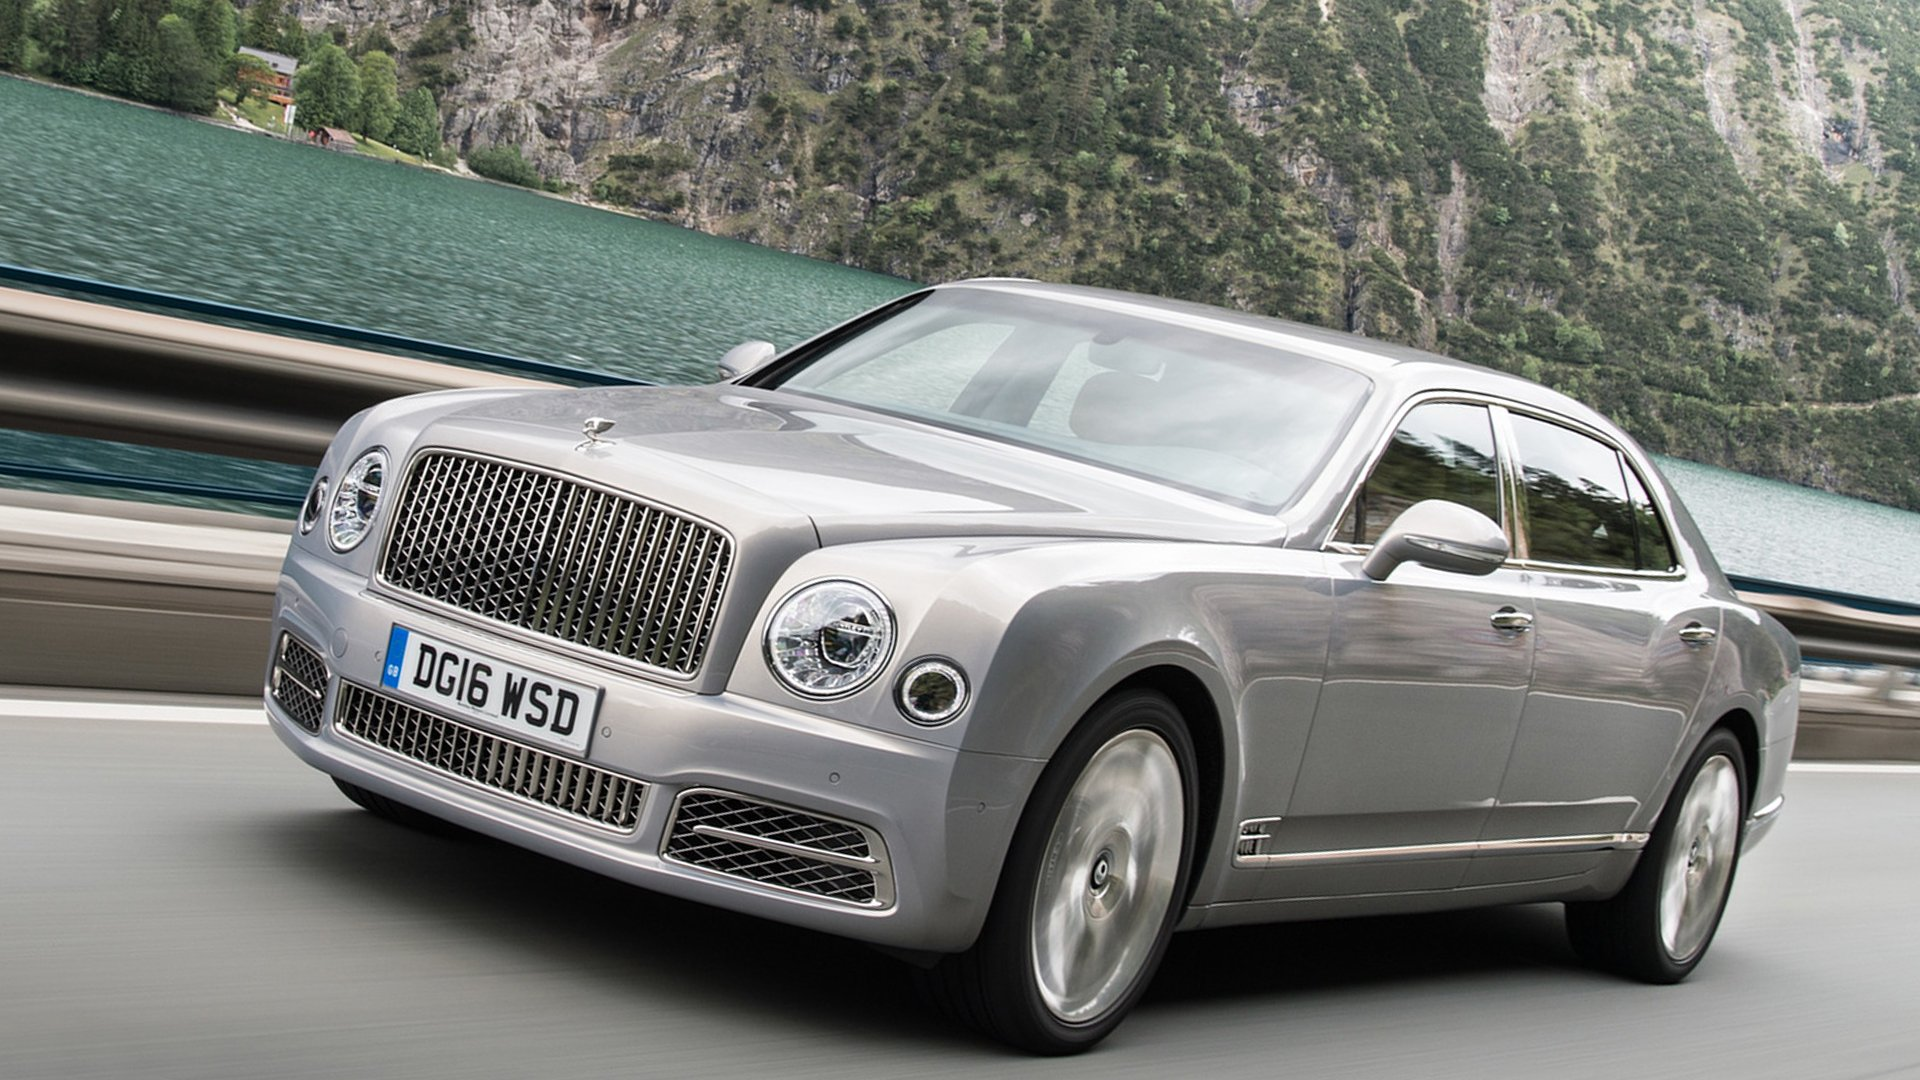 2019 Bentley Mulsanne Model Pictures Full HD